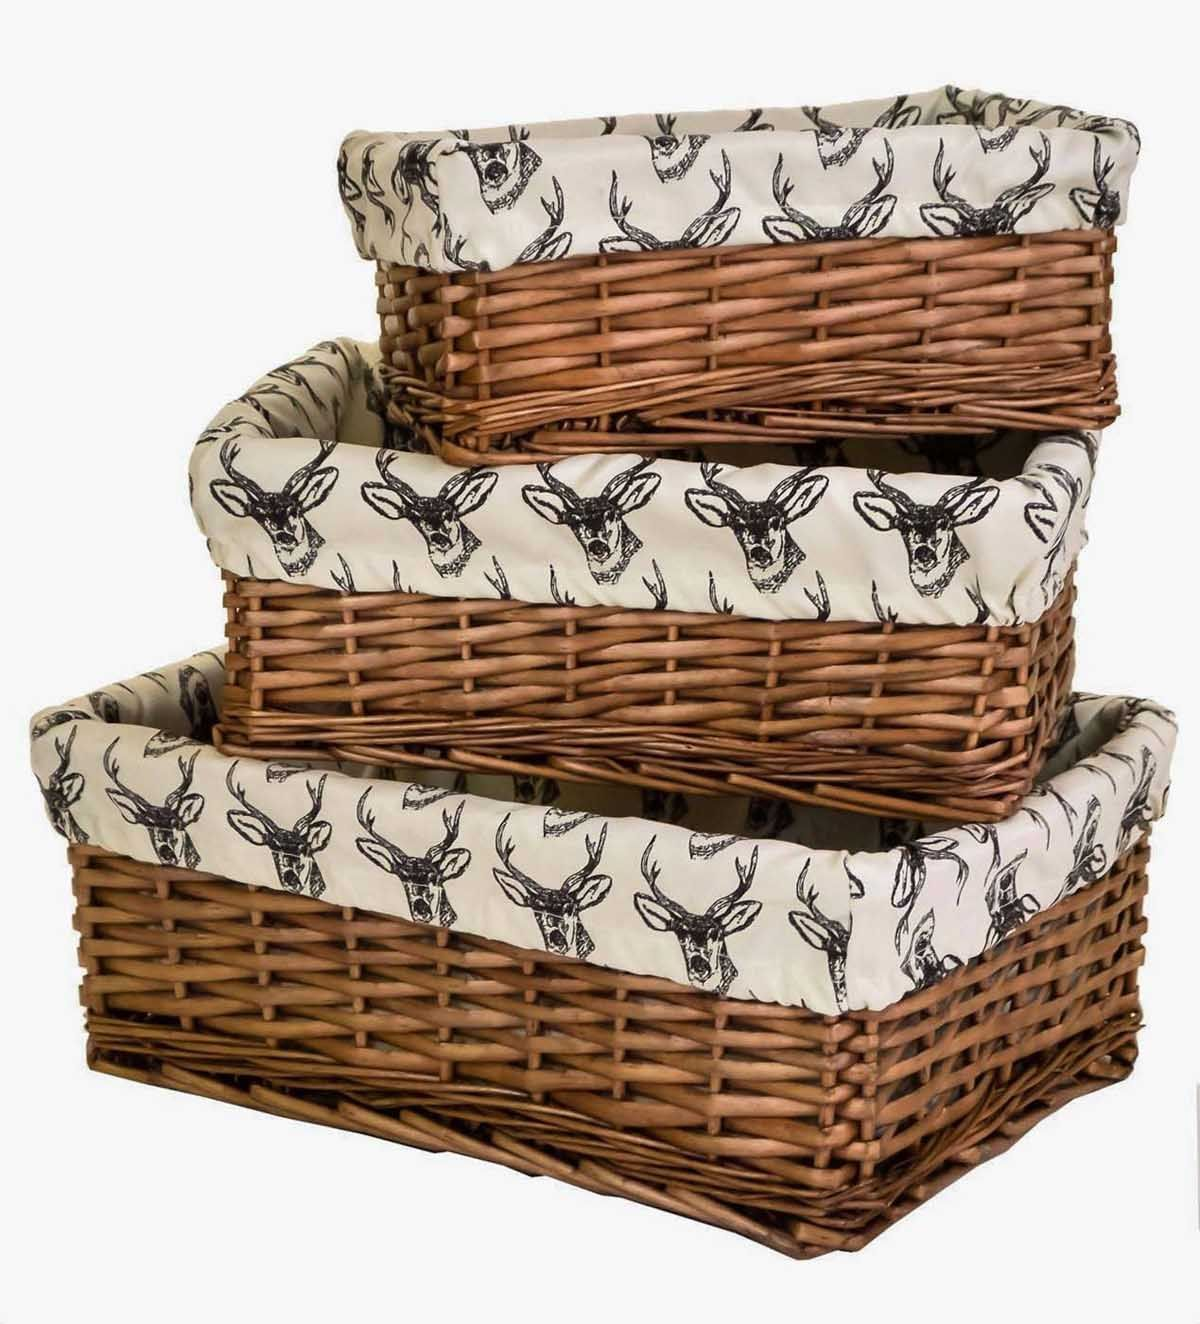 Willow Wicker Storage Basket With Liner For Home: Antique Brown Wicker Willow Shallow Storage Basket W/ Line